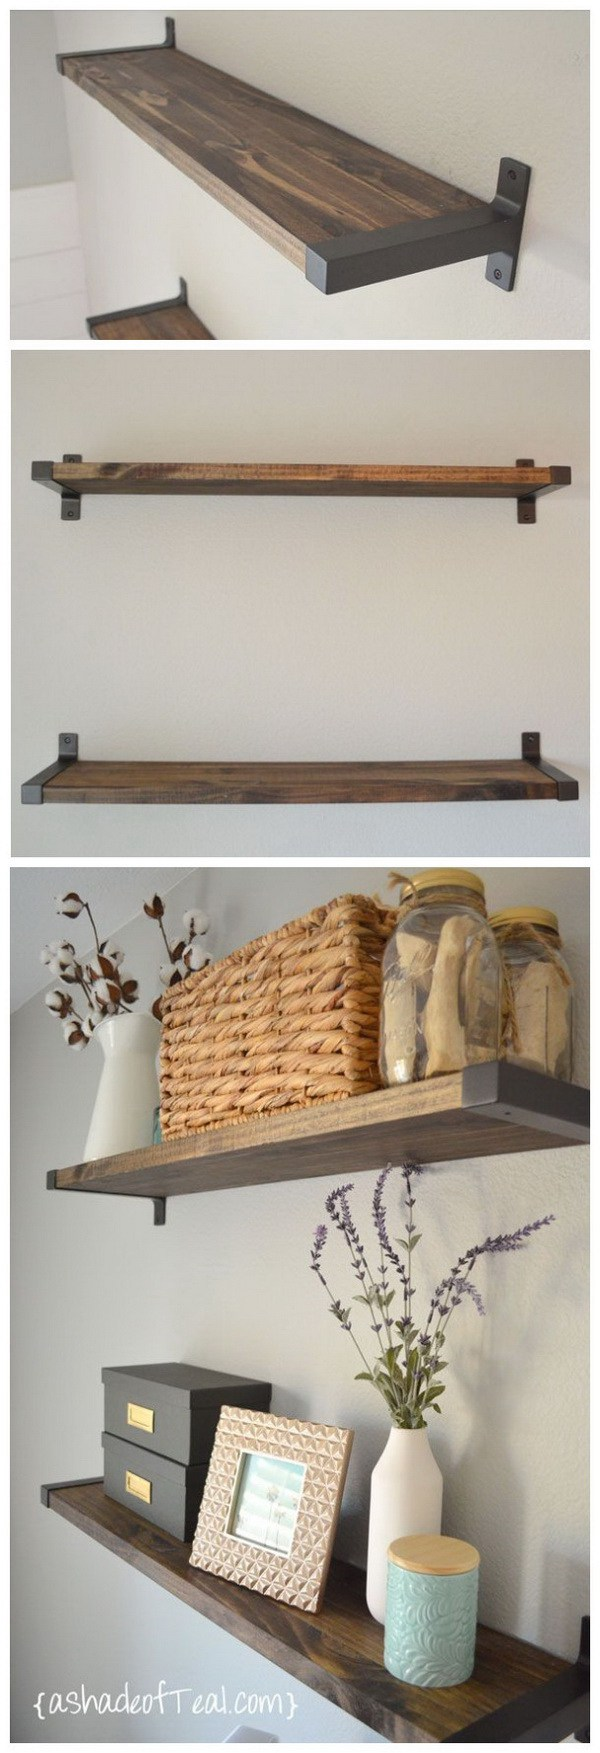 12. Simple Wall Shelves